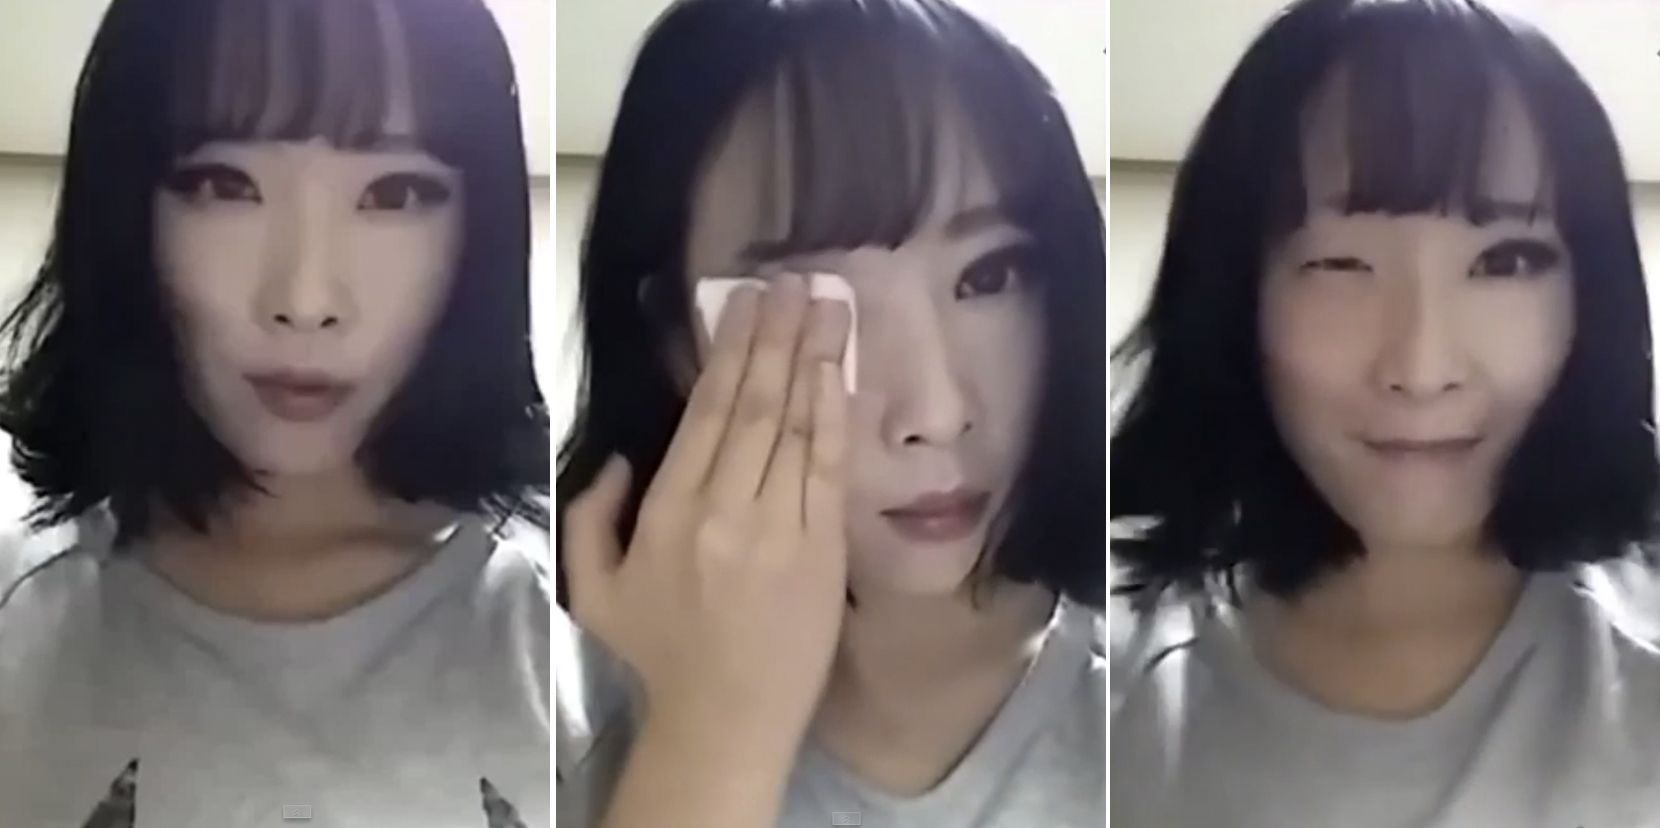 How to Remove Your Face Viral Video - No Makeup Transformation Viral